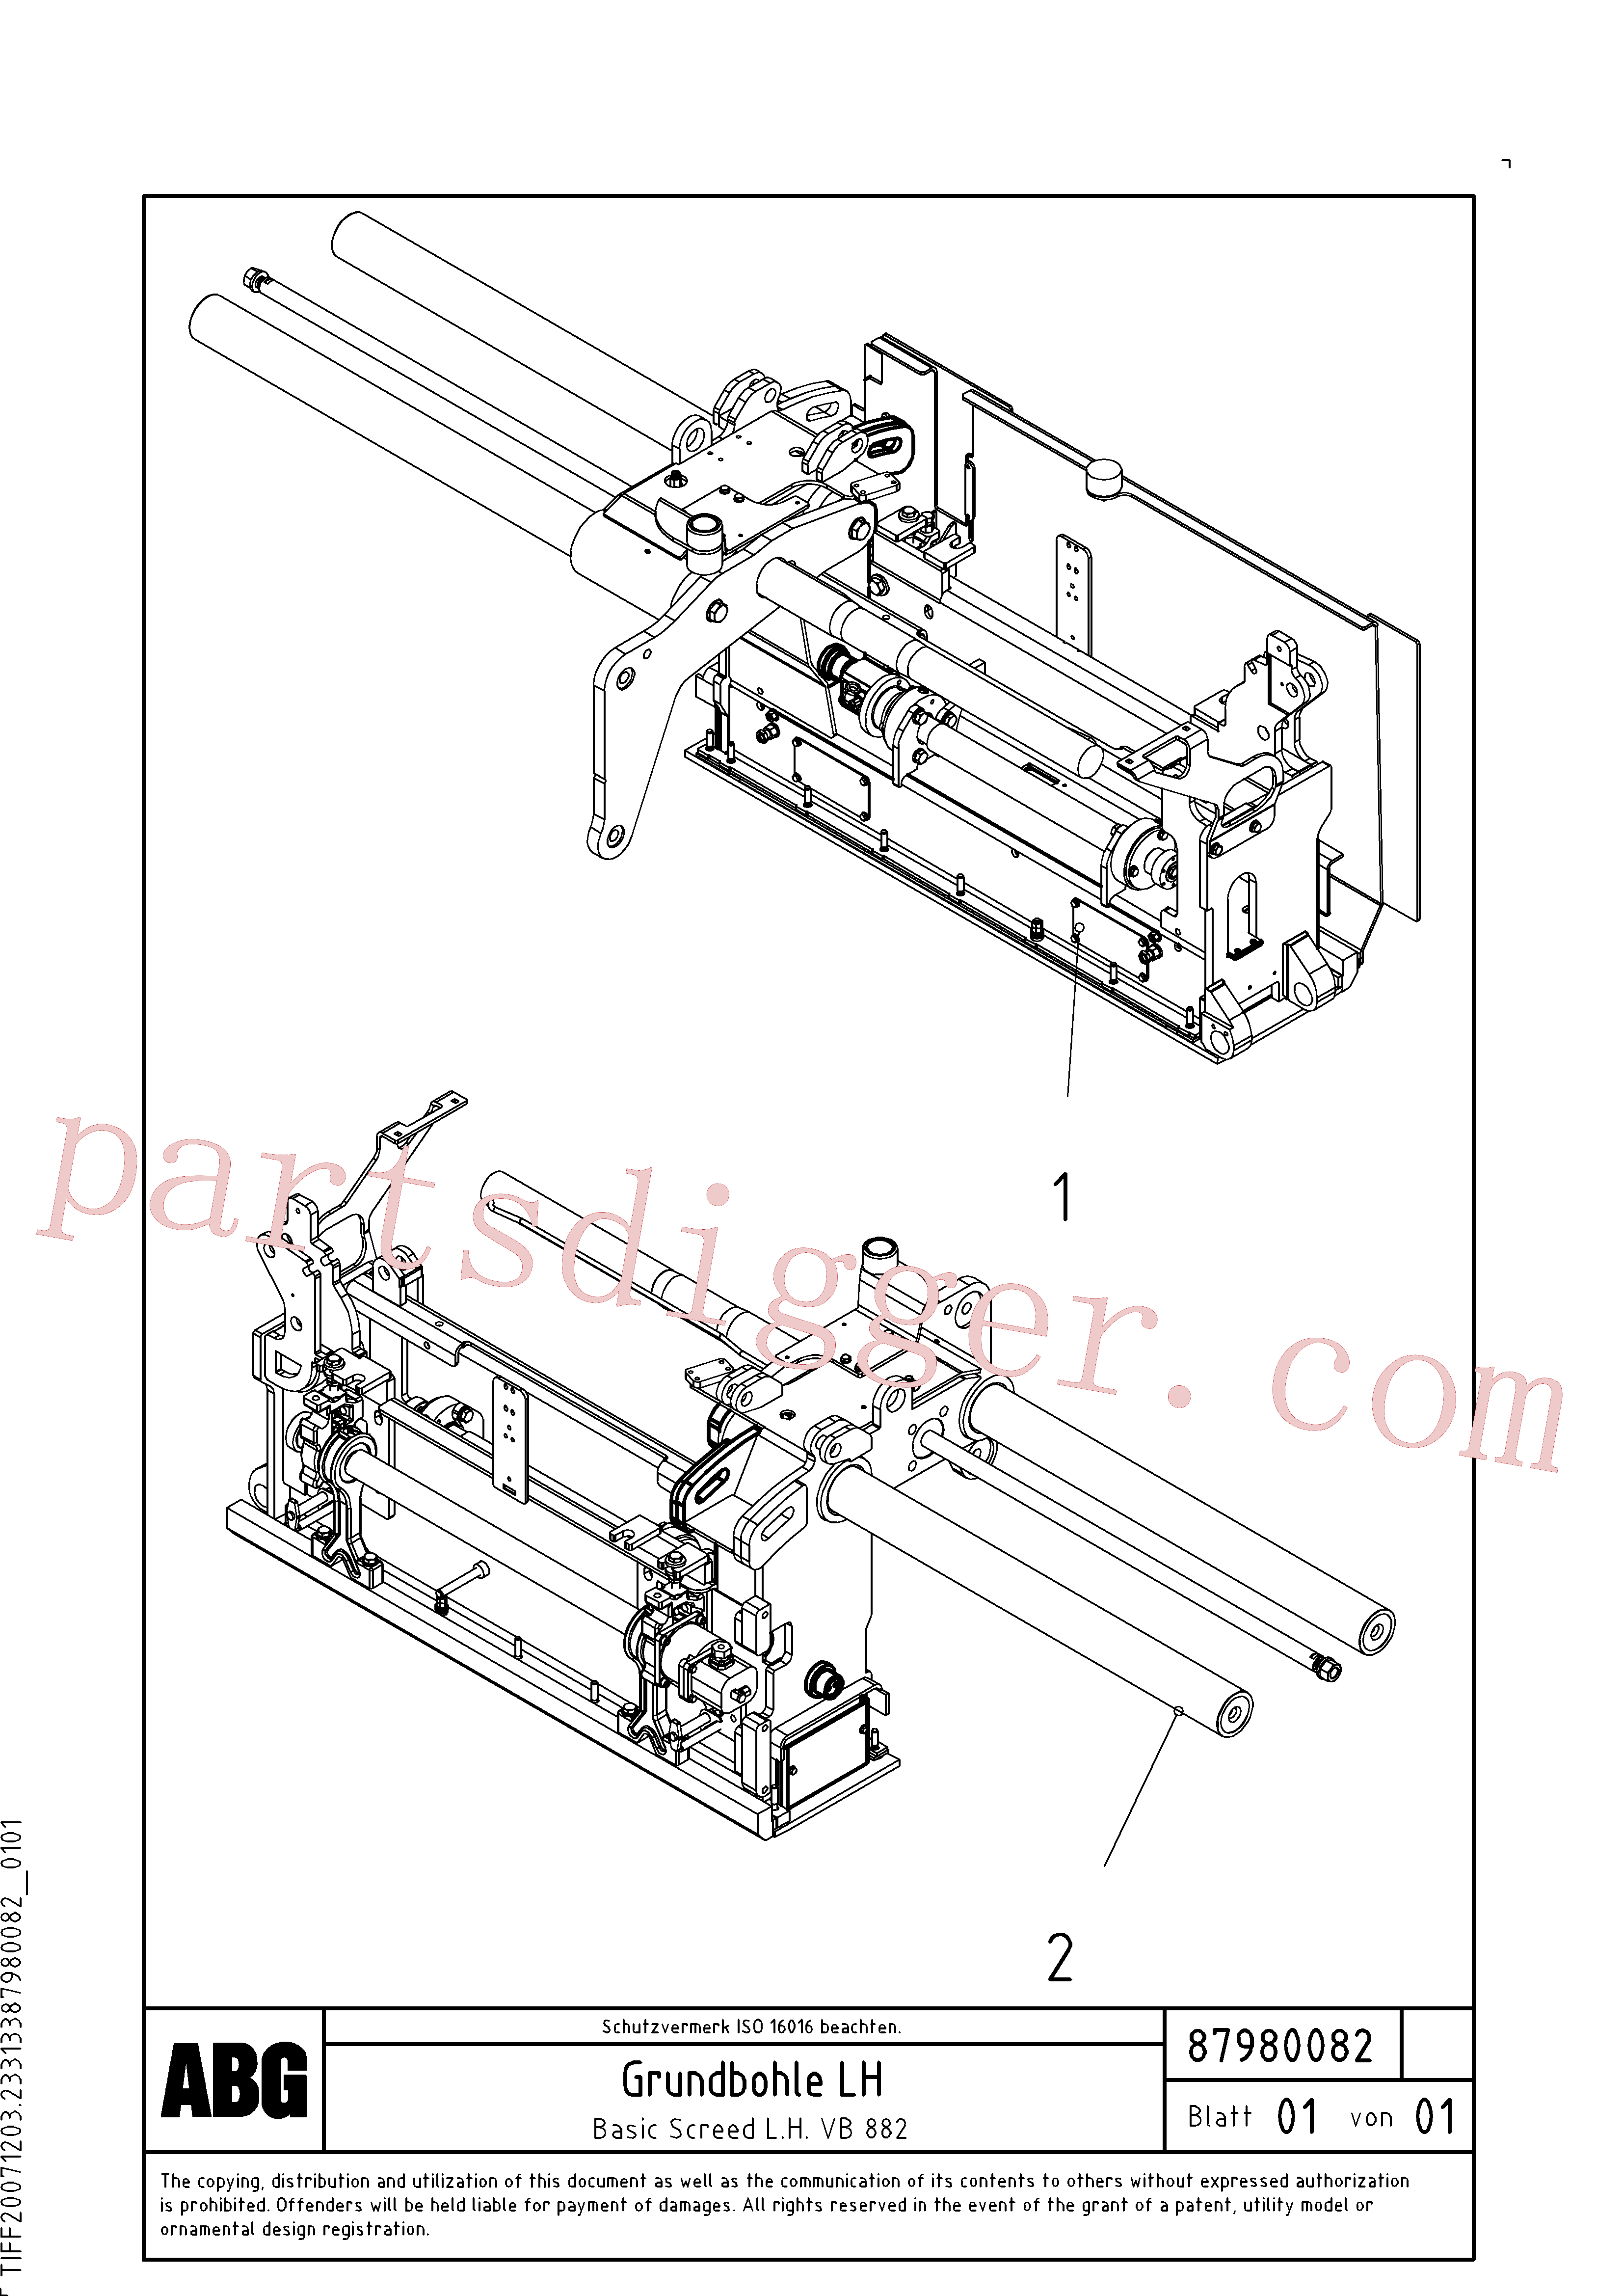 RM87980041 for Volvo Basic screed(1048233 assembly)